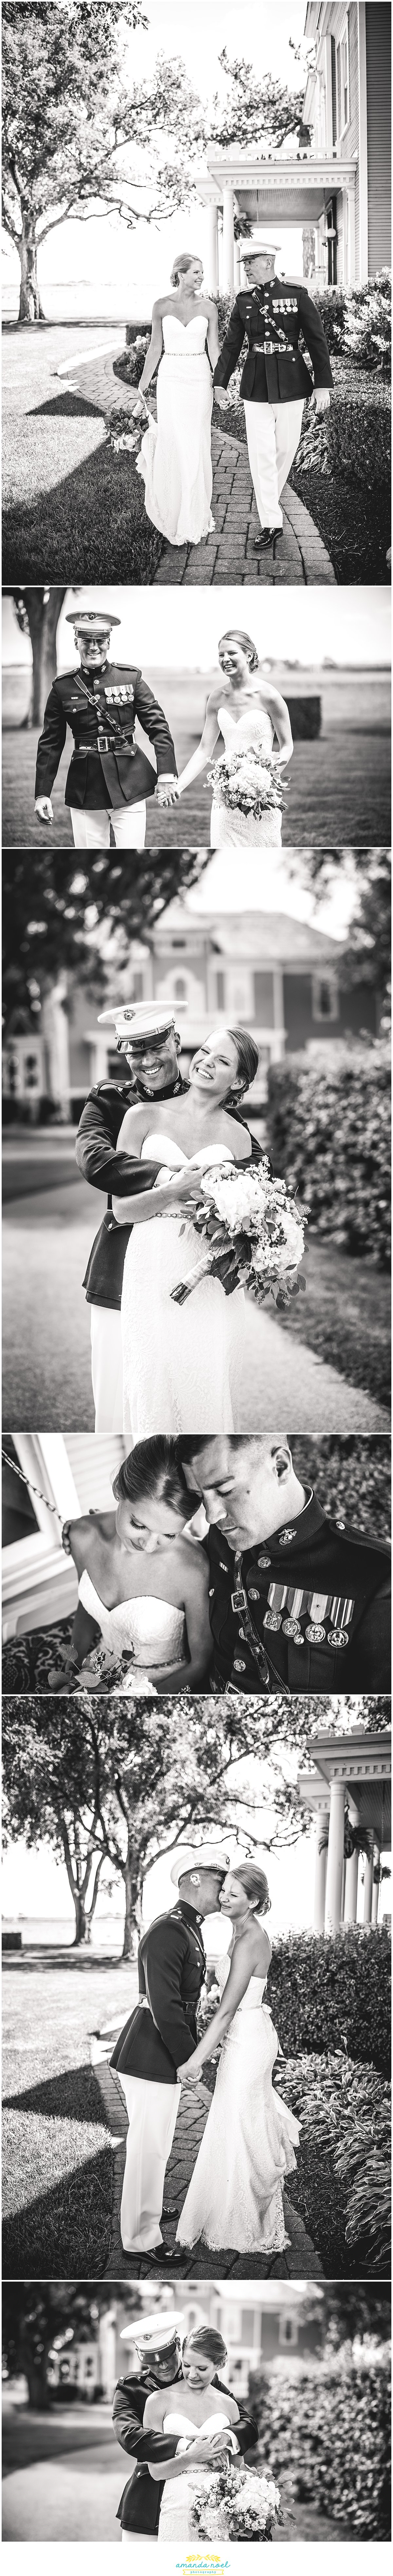 outdoor couple portaits black and white